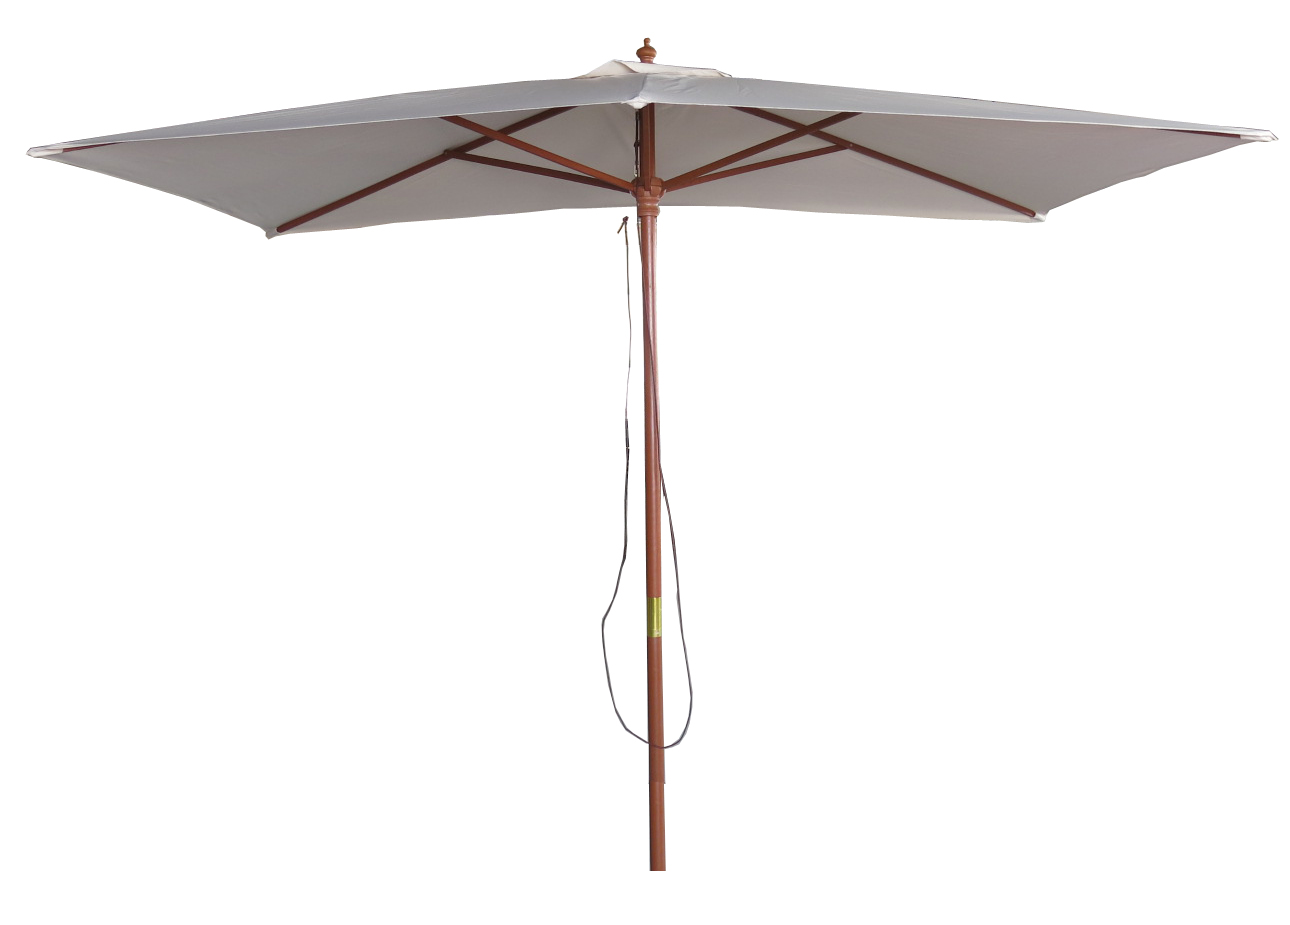 garden parasol 3m x 2m rectangular beige canopy heavy. Black Bedroom Furniture Sets. Home Design Ideas